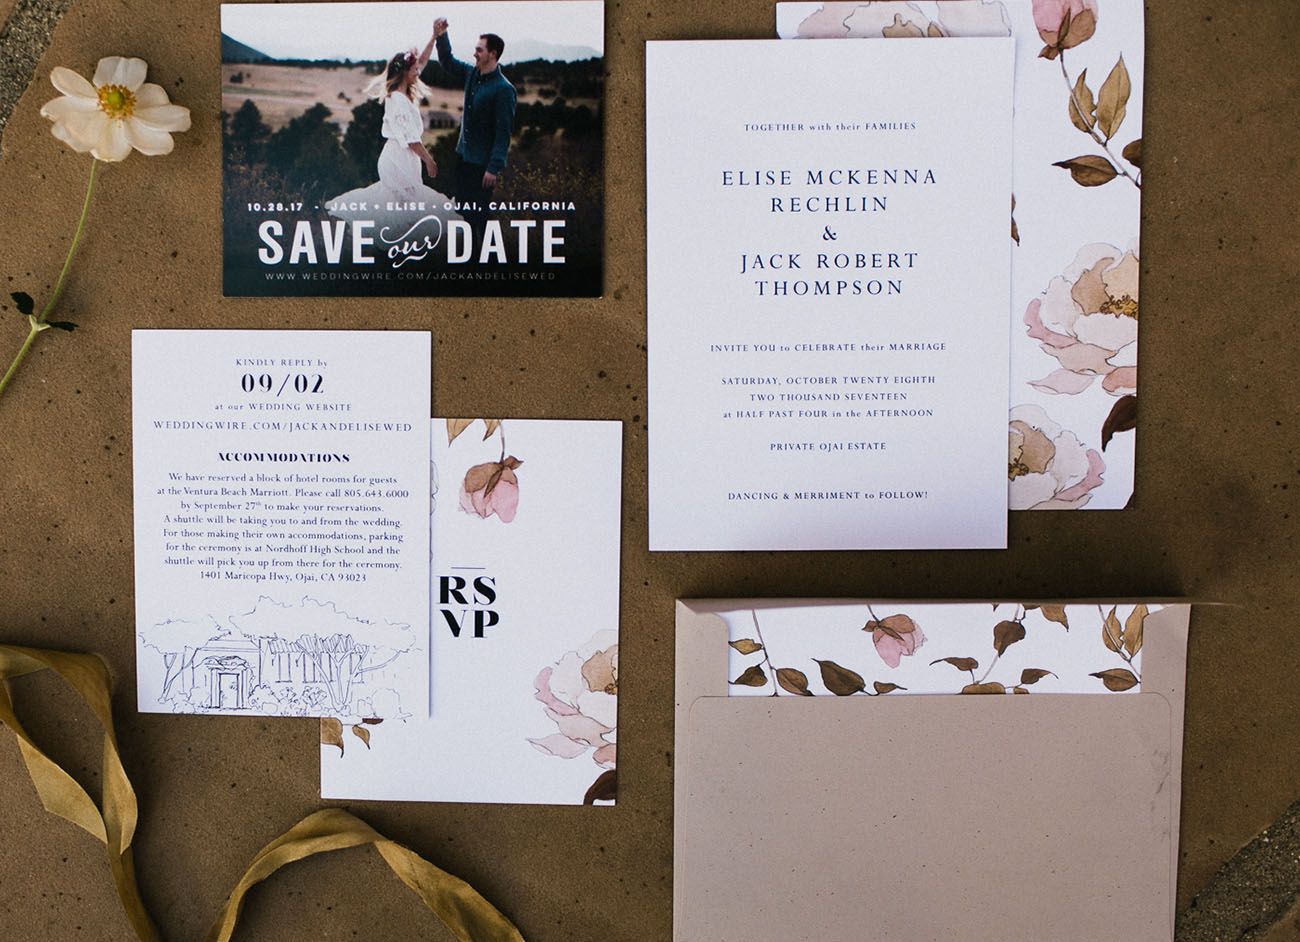 The wedding invitation suite was done with kraft paper and blush roses